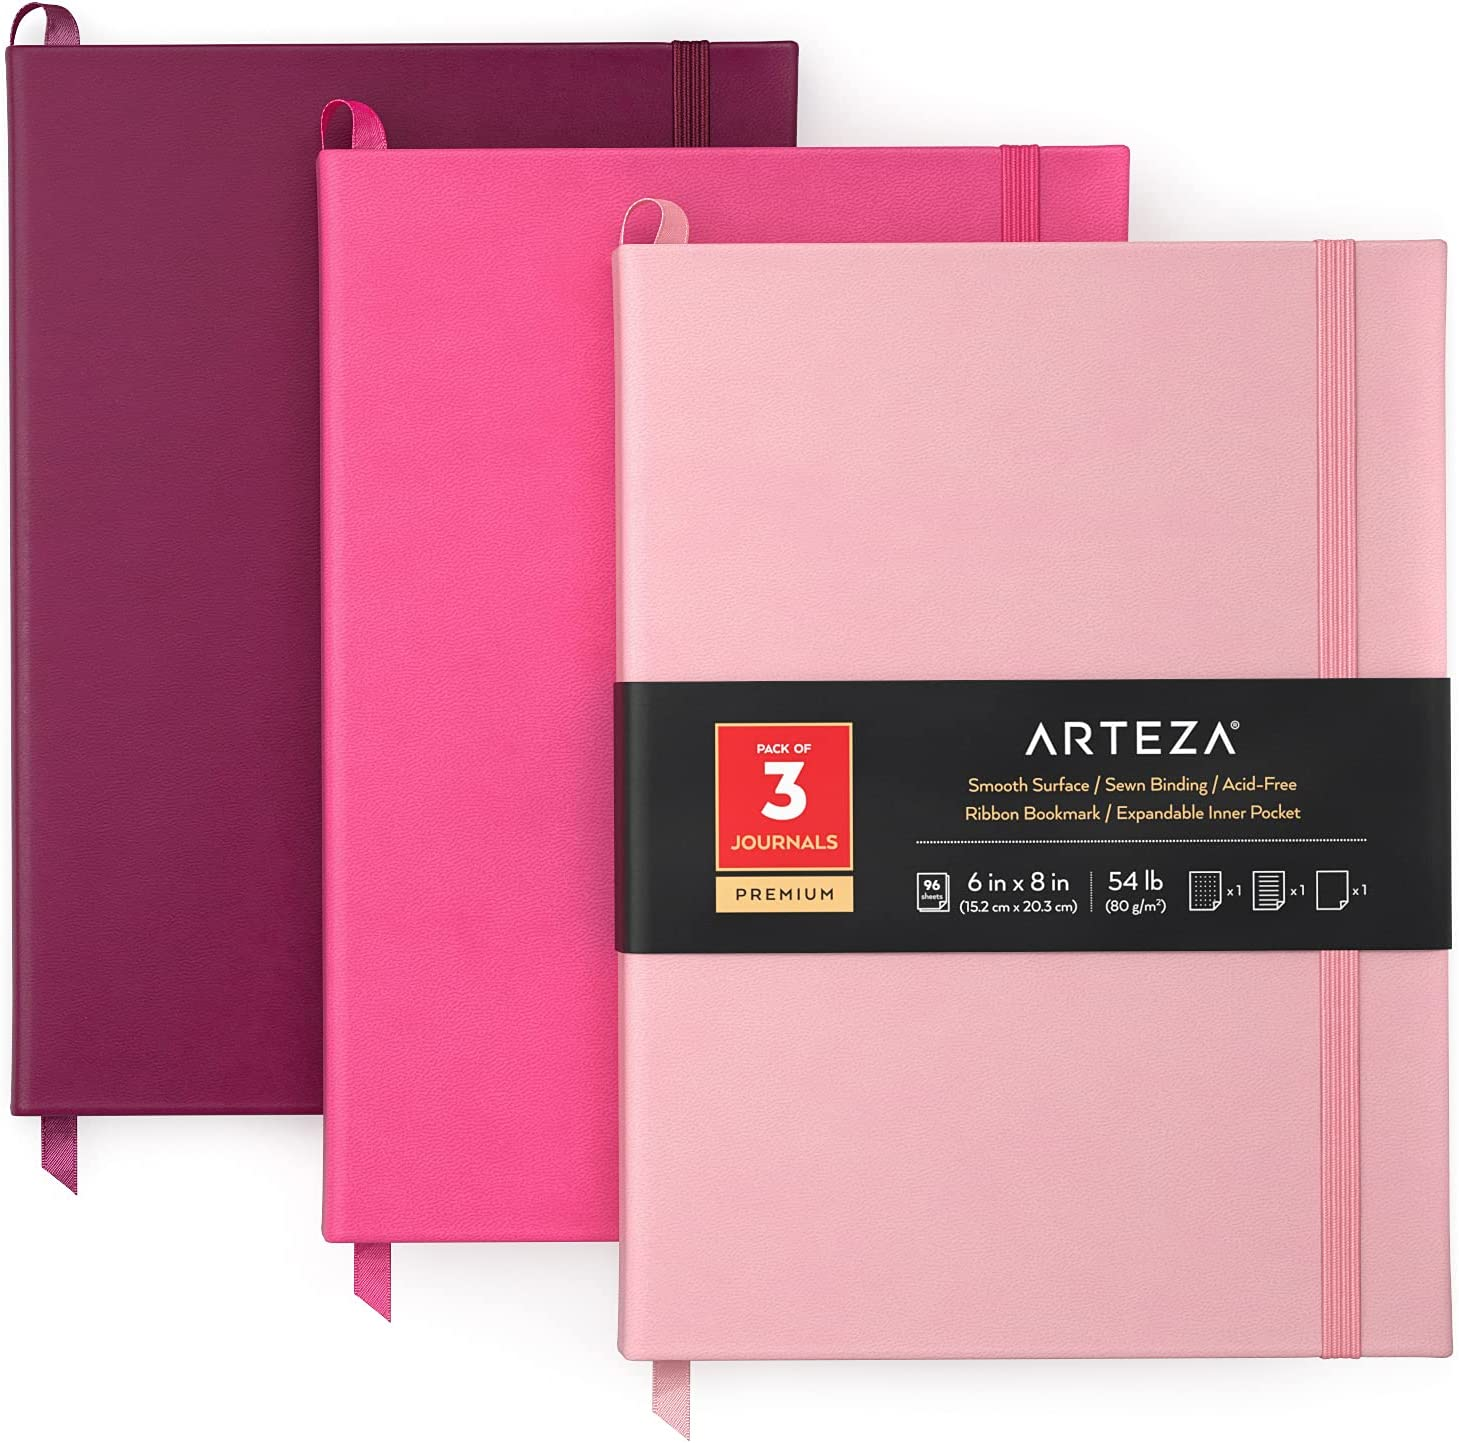 Arteza Journal Notebooks Pack of 3 6 Ranking Max 67% OFF TOP2 8 Sheets x inch 96 Ligh